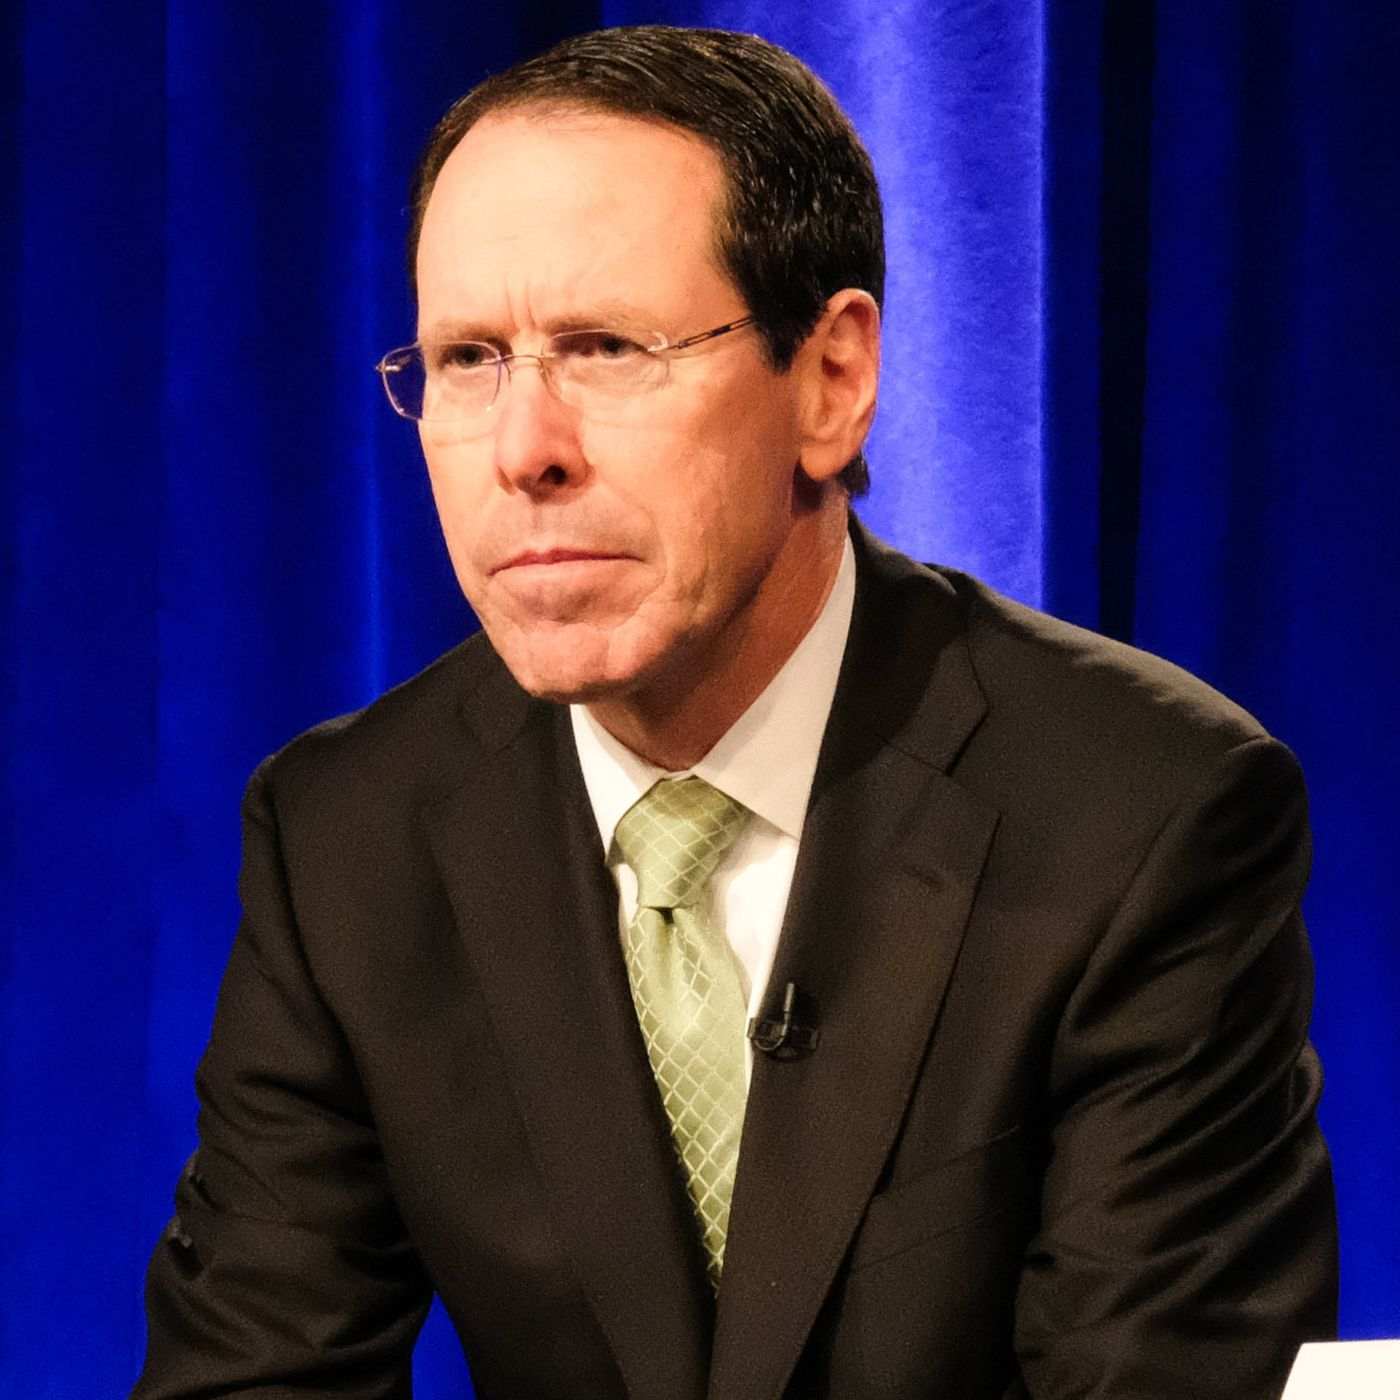 At T Ceo Randall Stephenson Is Stepping Down John Stankey To